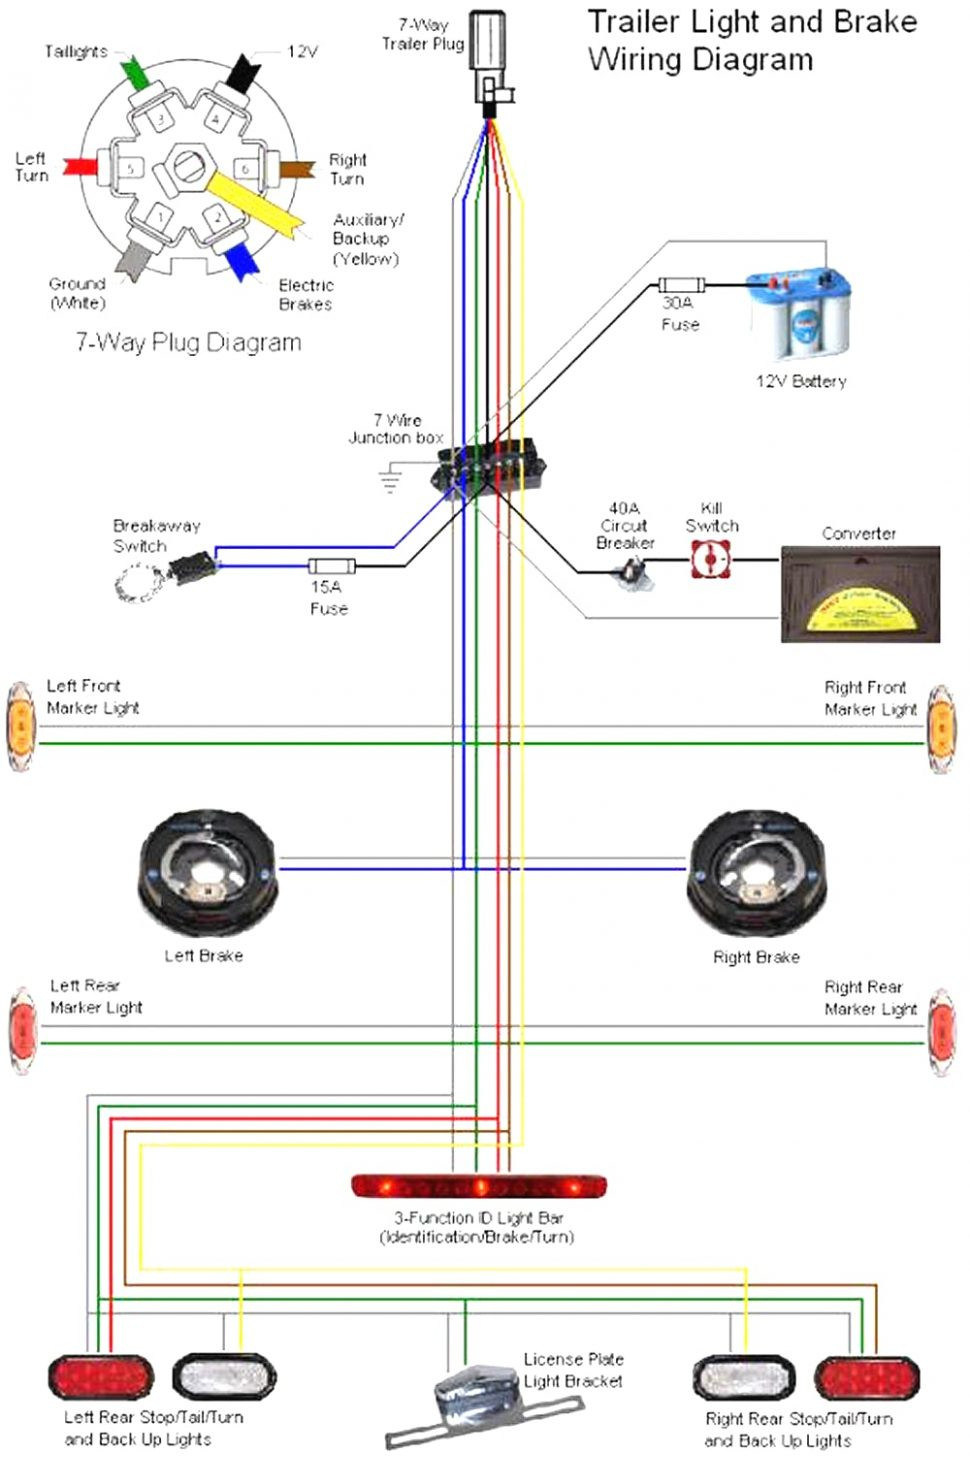 Ww Trailer Wiring Diagram from static-cdn.imageservice.cloud